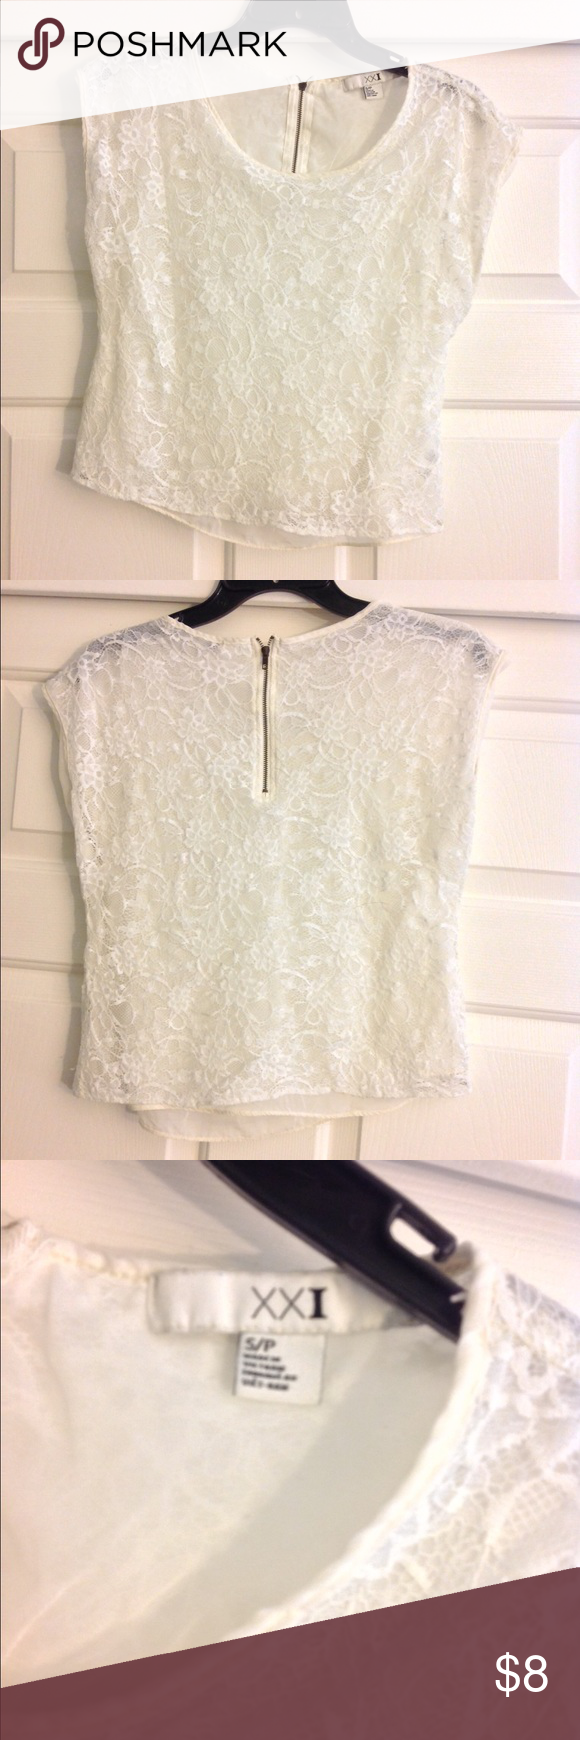 Lace Blouse Super cute and is easy to dress up or down. In good condition. Forever 21 Tops Blouses